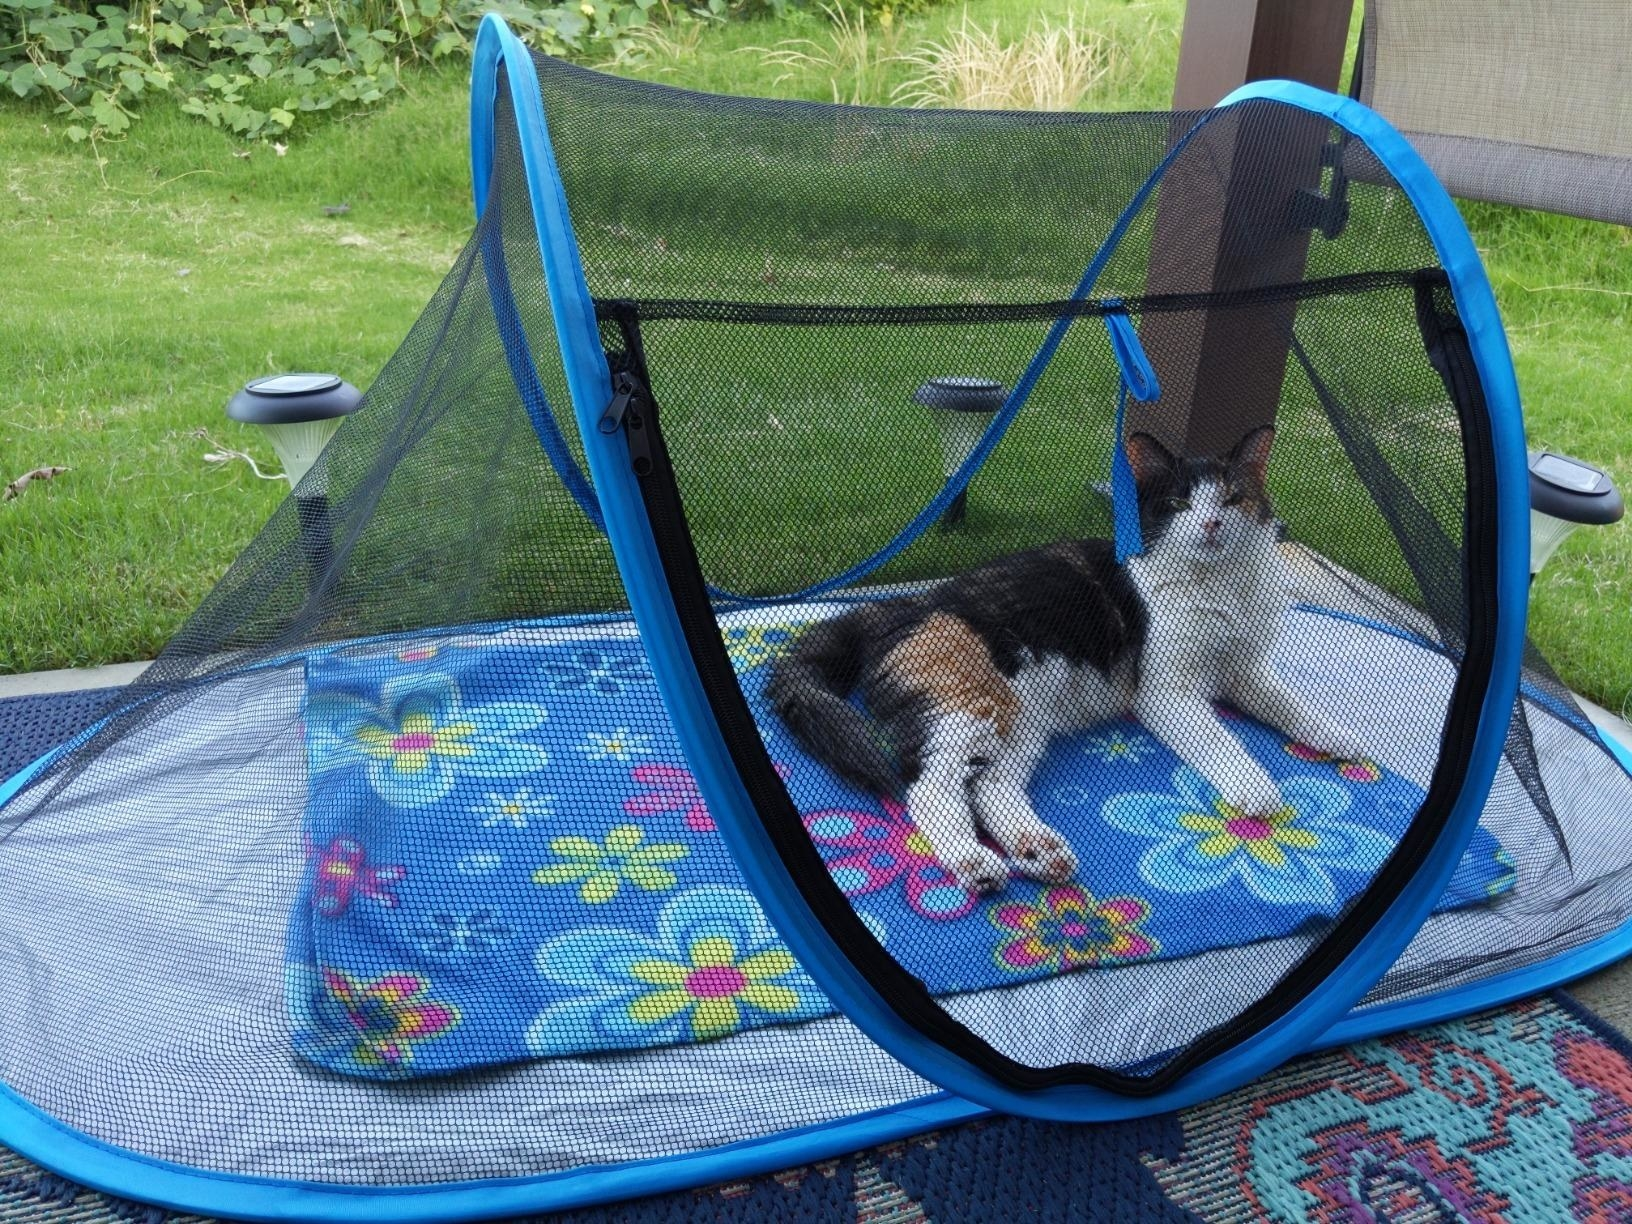 The tent, which has a tarp-like bottom and a tent-style triangular top, which is made entirely of mesh, so the cat can see through all of it